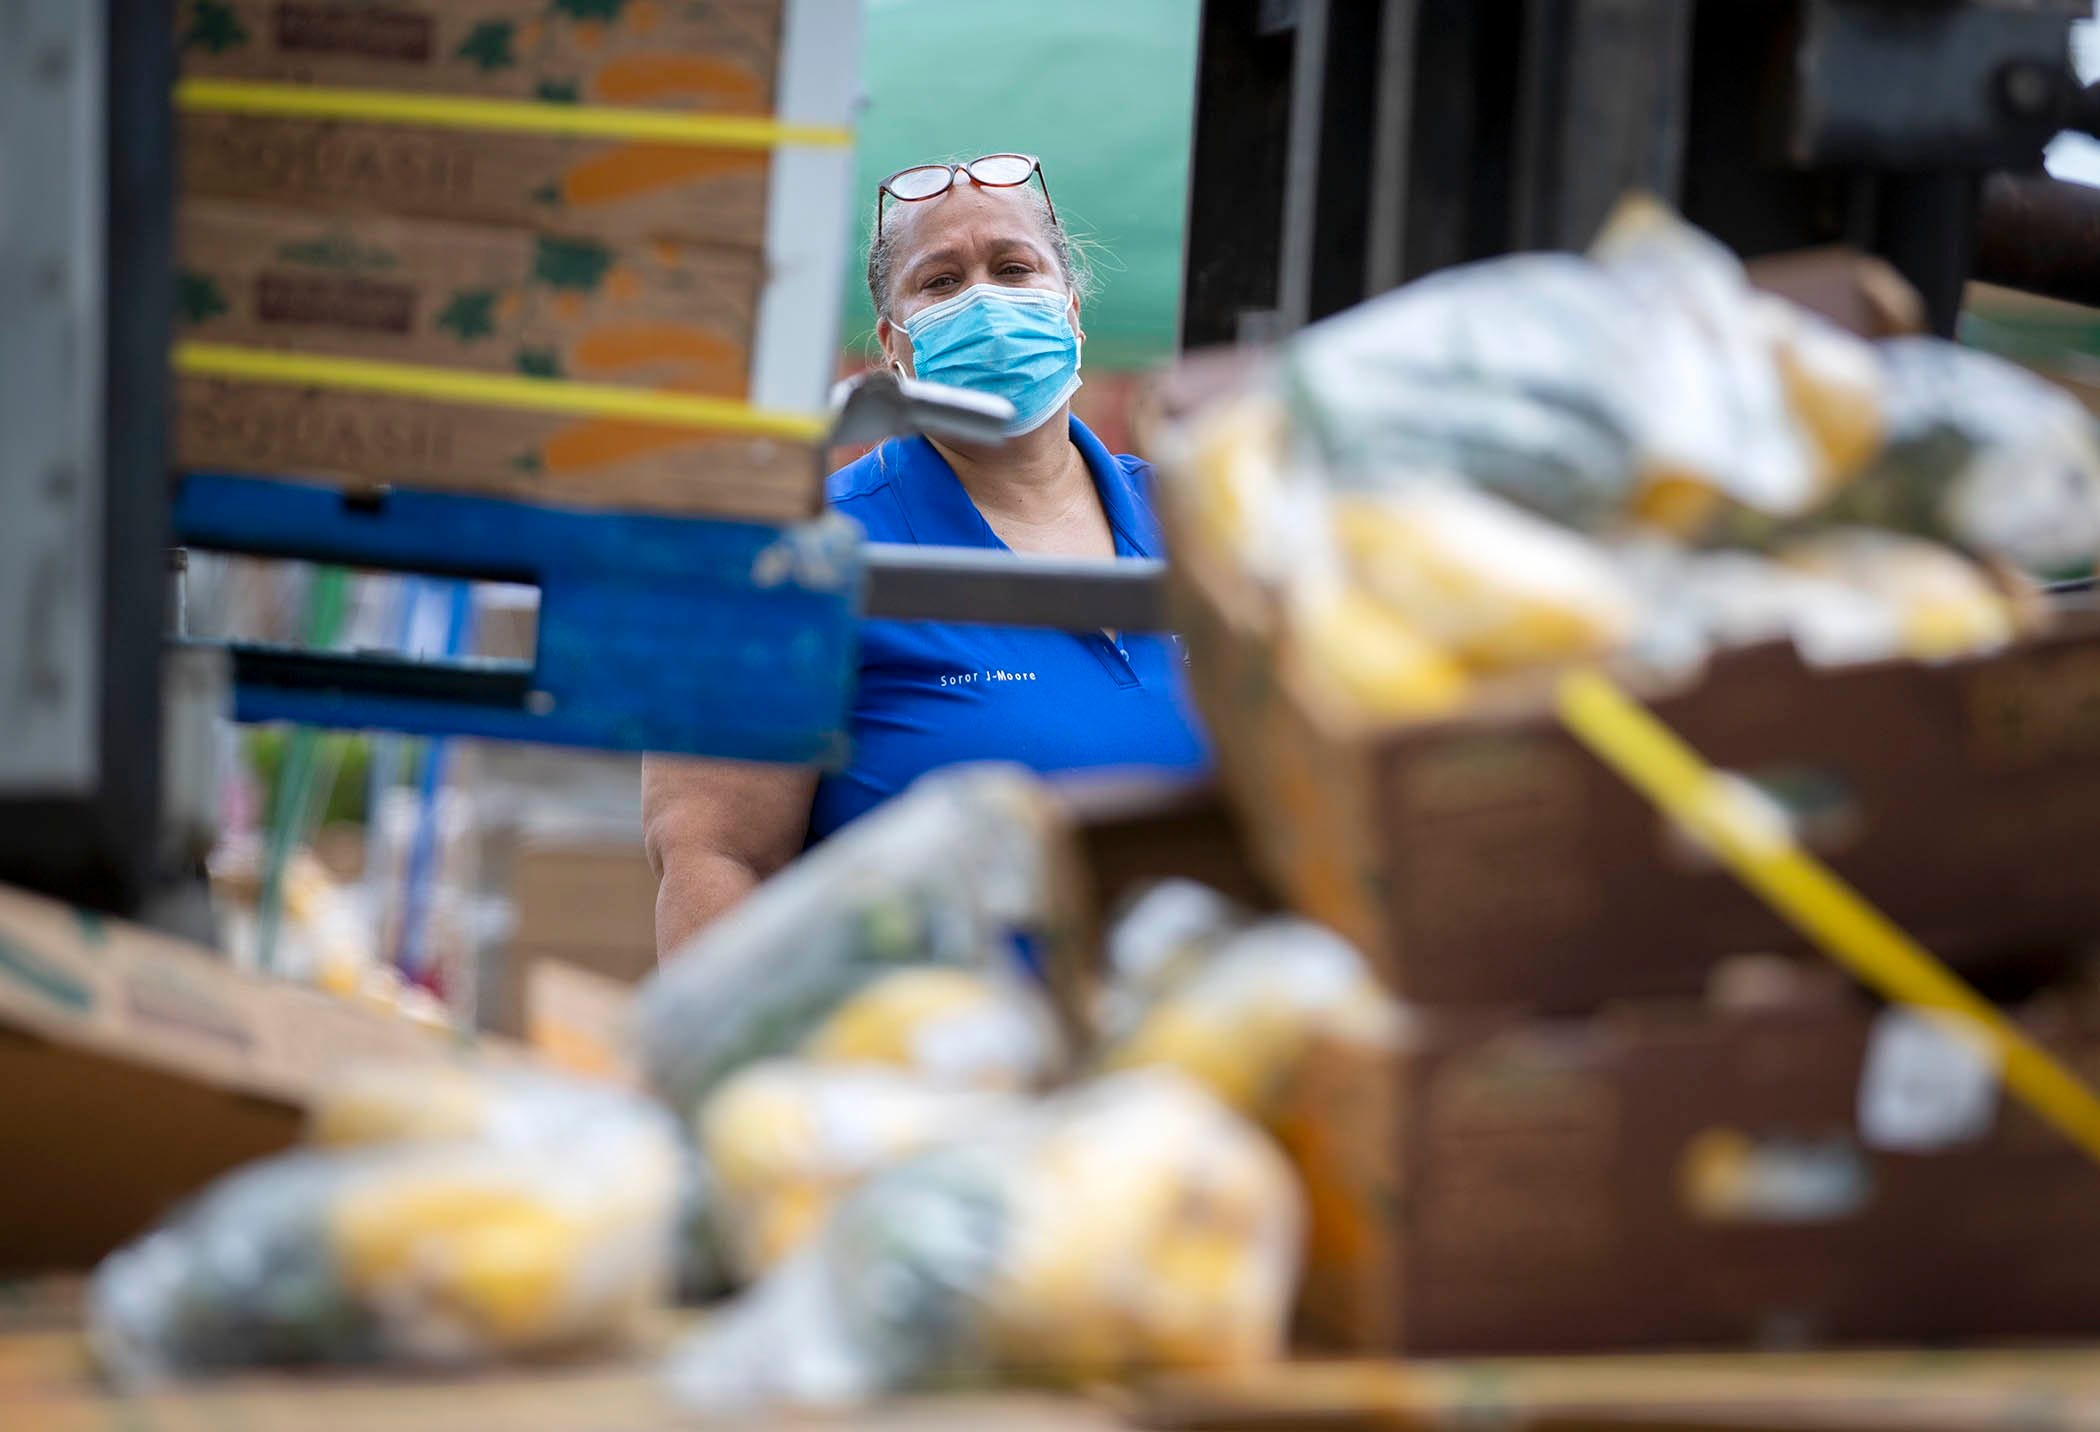 Tammy Jackson Moore helped start, the non-profit, Guardians of the Glades. Every Friday she coordinates in one of the tri-city area centers a food distribution and coronavirus testing site. She helped distribute 100,000 pounds of food in South Bay, July 24, 2020.